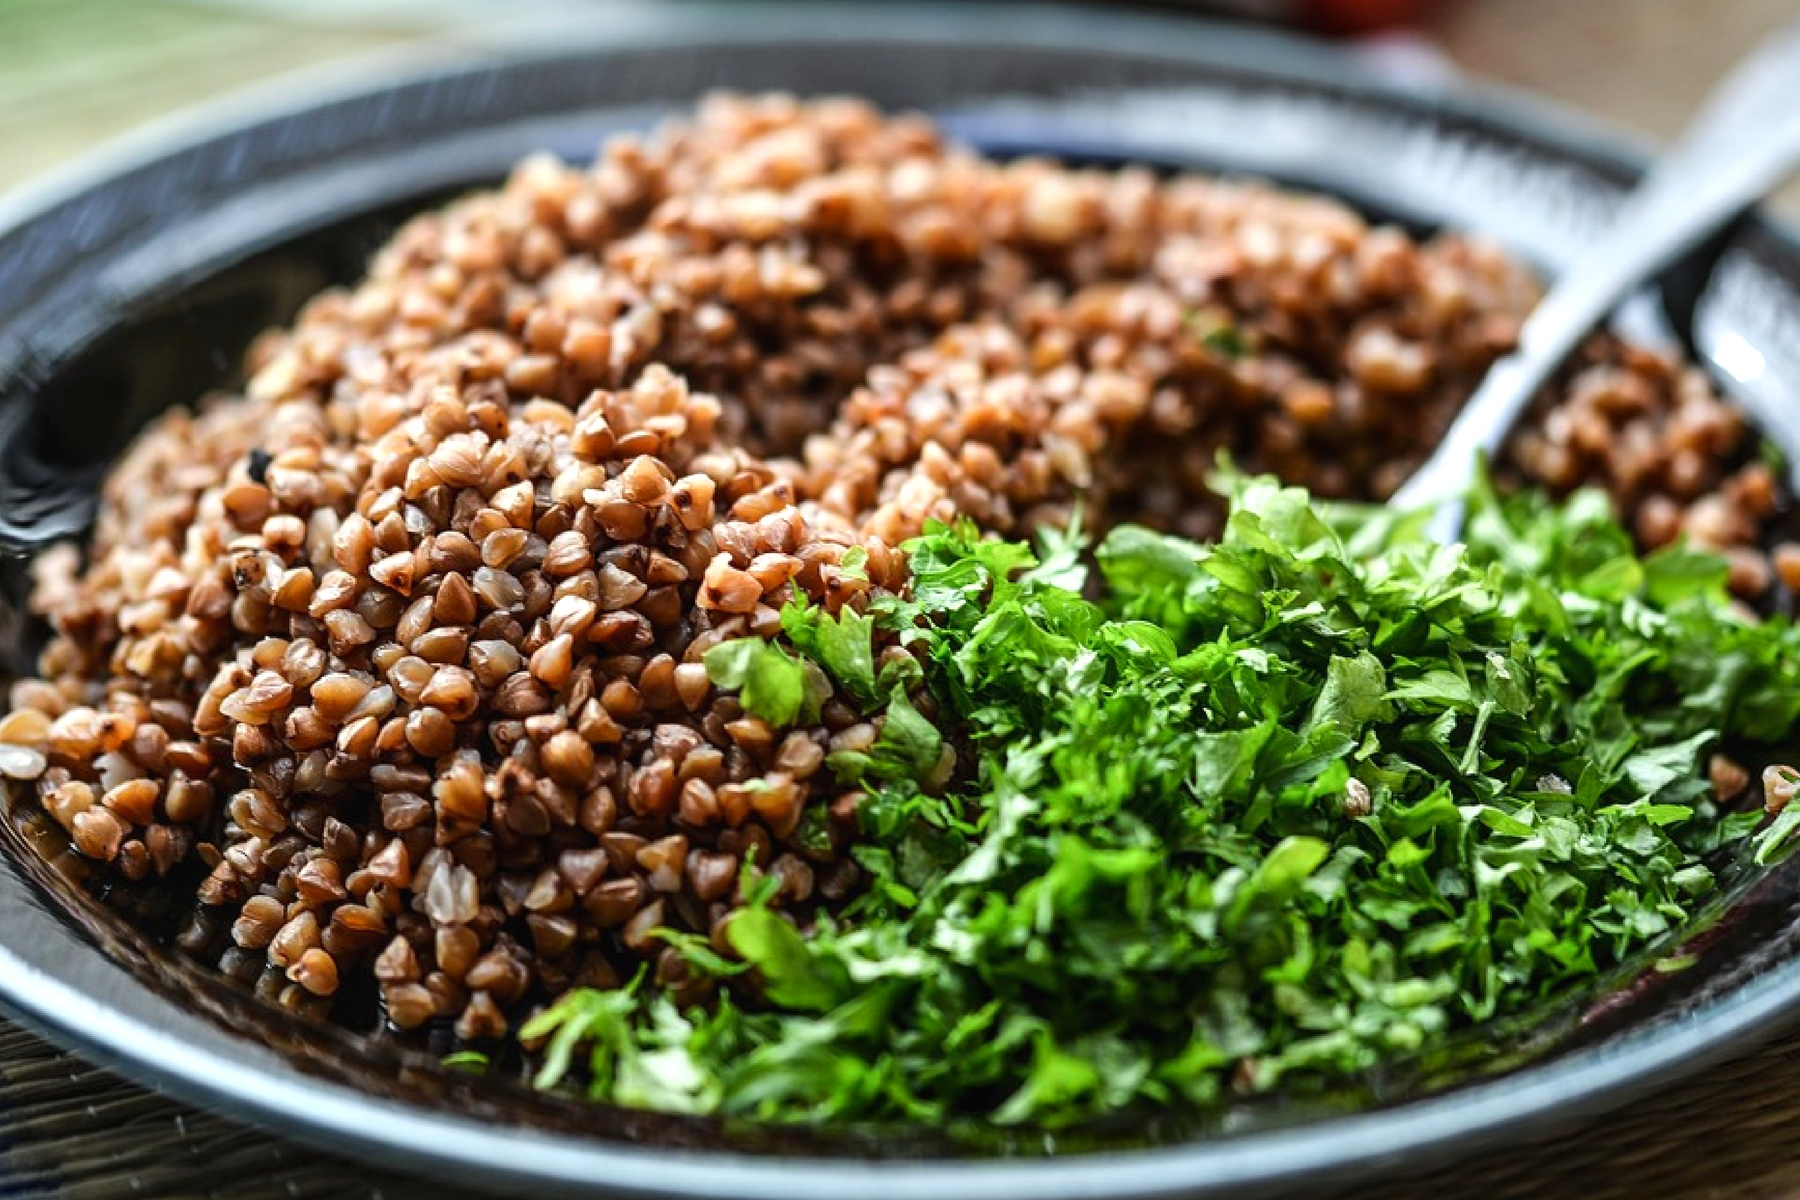 Barley groats. Benefits and cooking 23